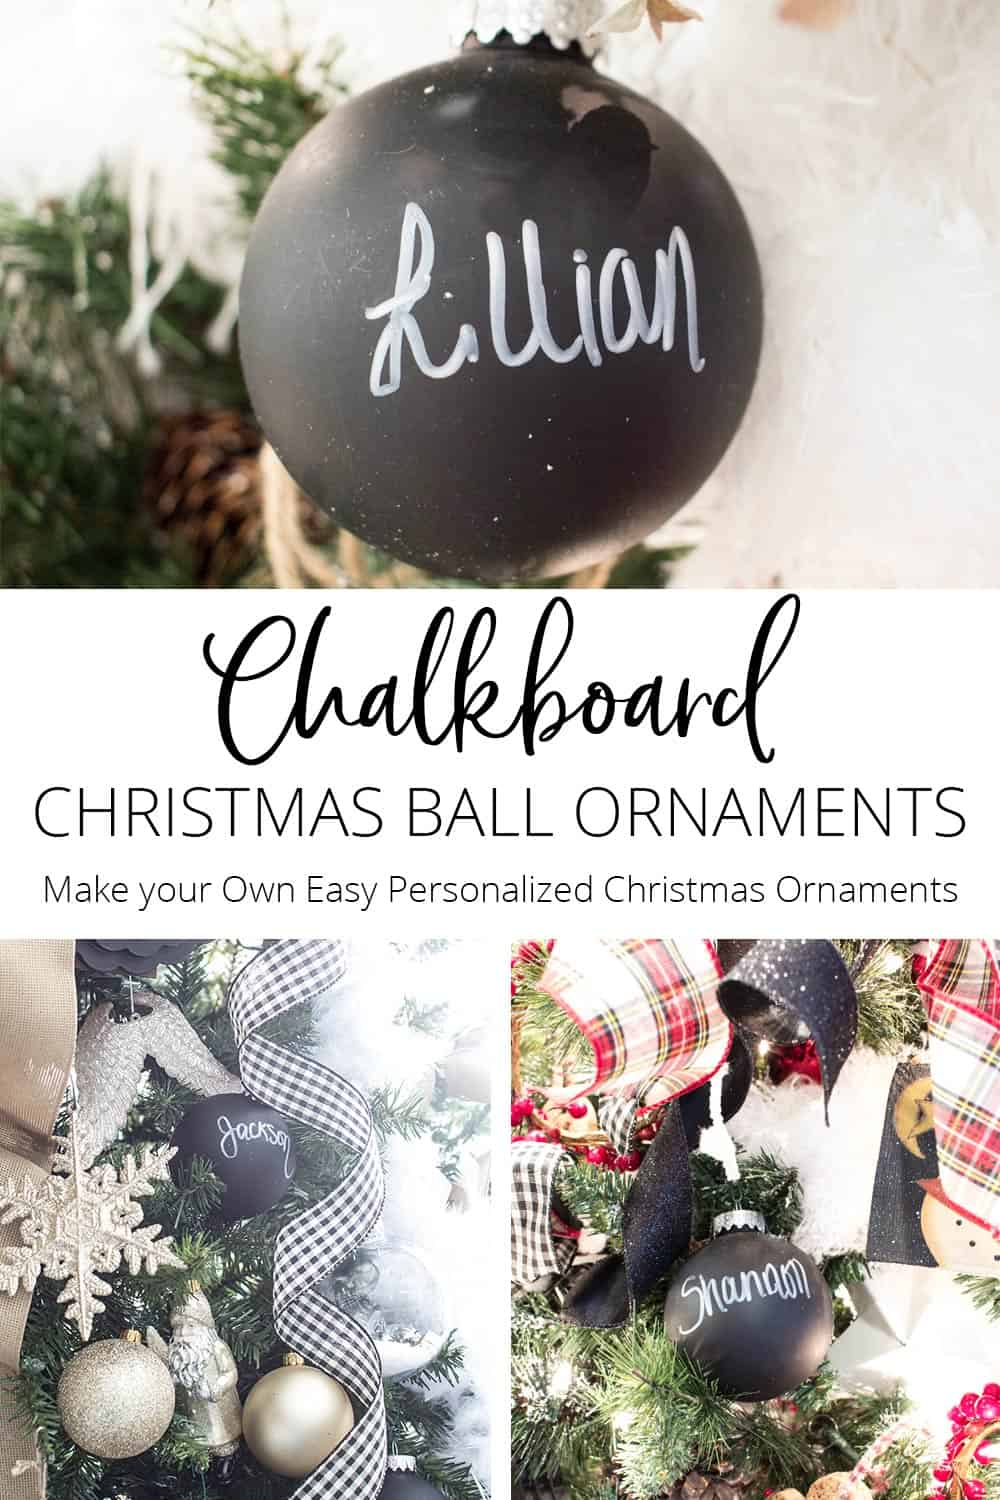 Chalkboard Christmas Ball Ornaments